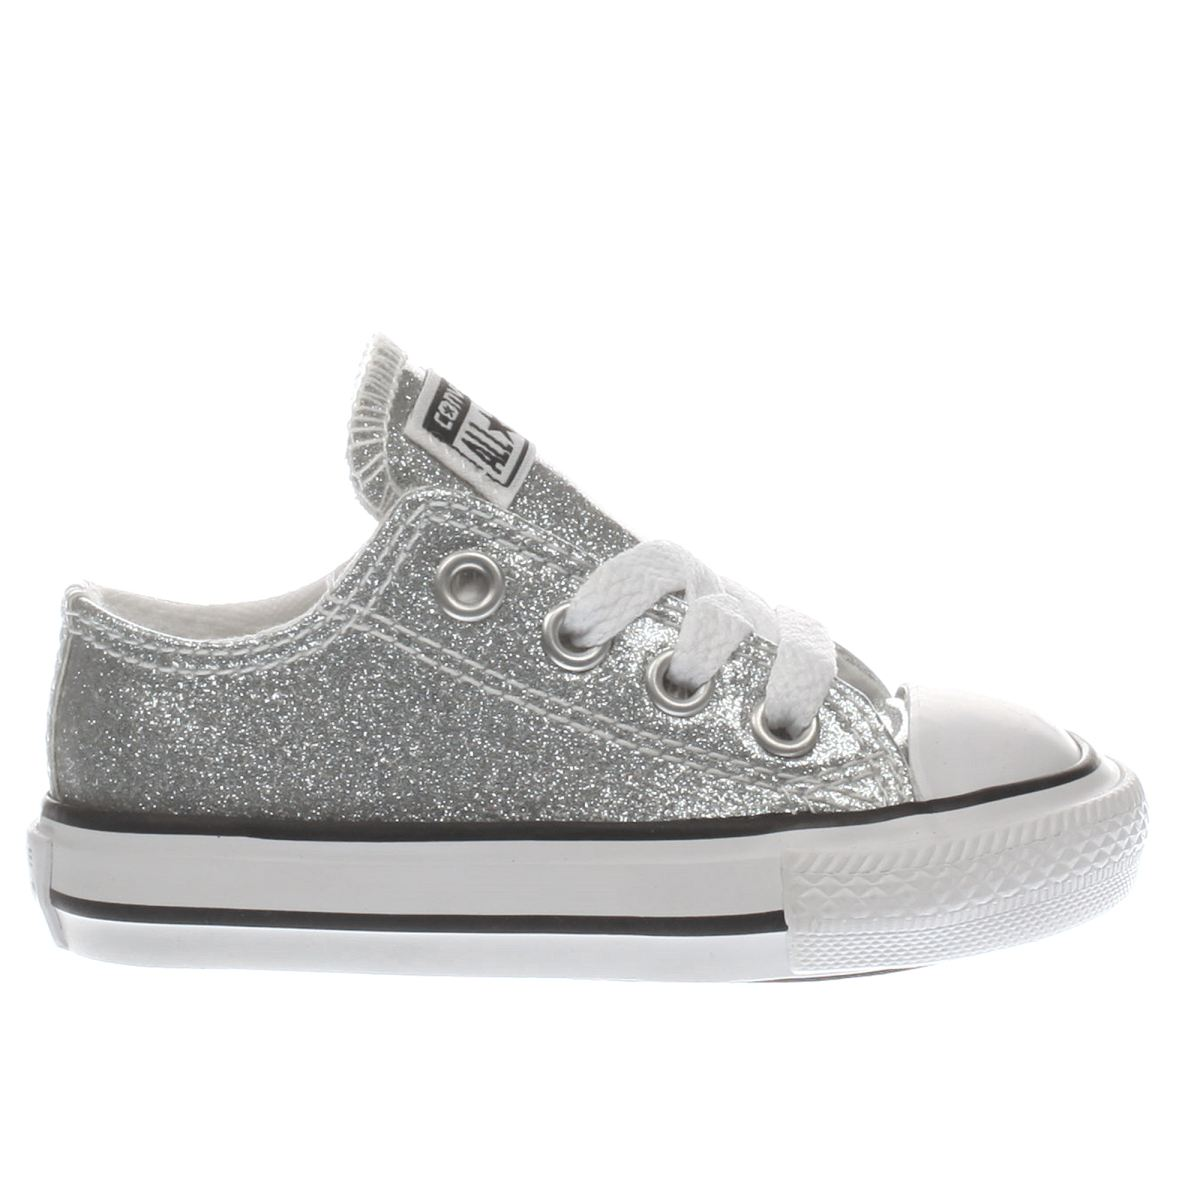 converse trainers converse silver all star ox glitter girls toddler YULWZXV